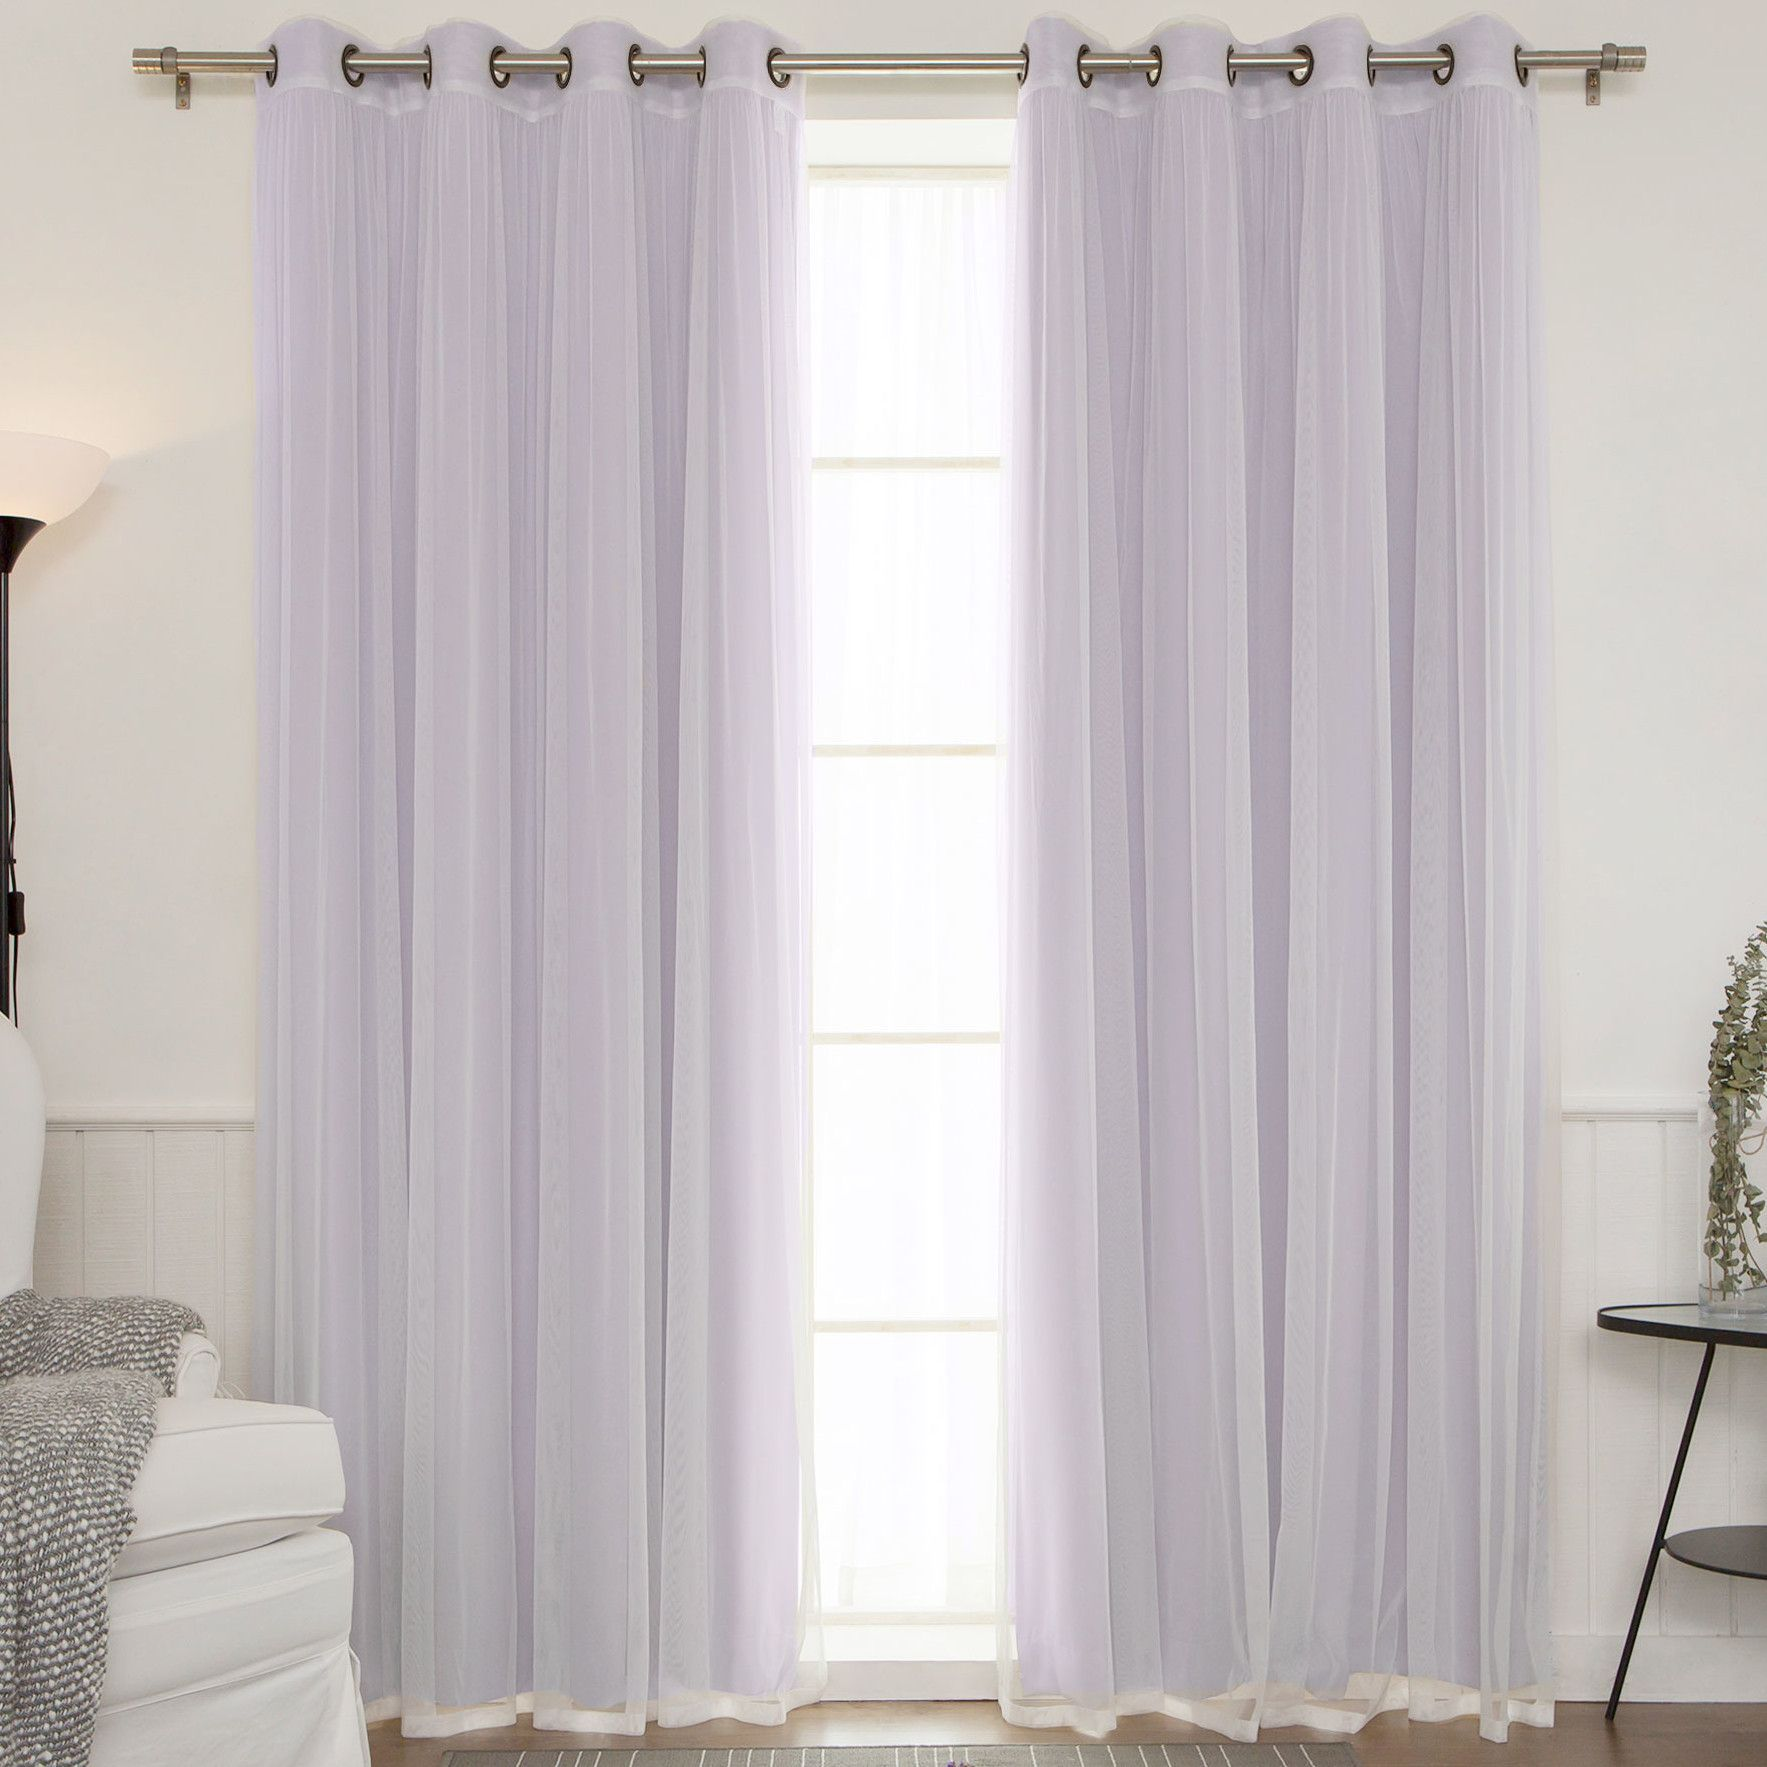 Mix & Match Curtain Panel